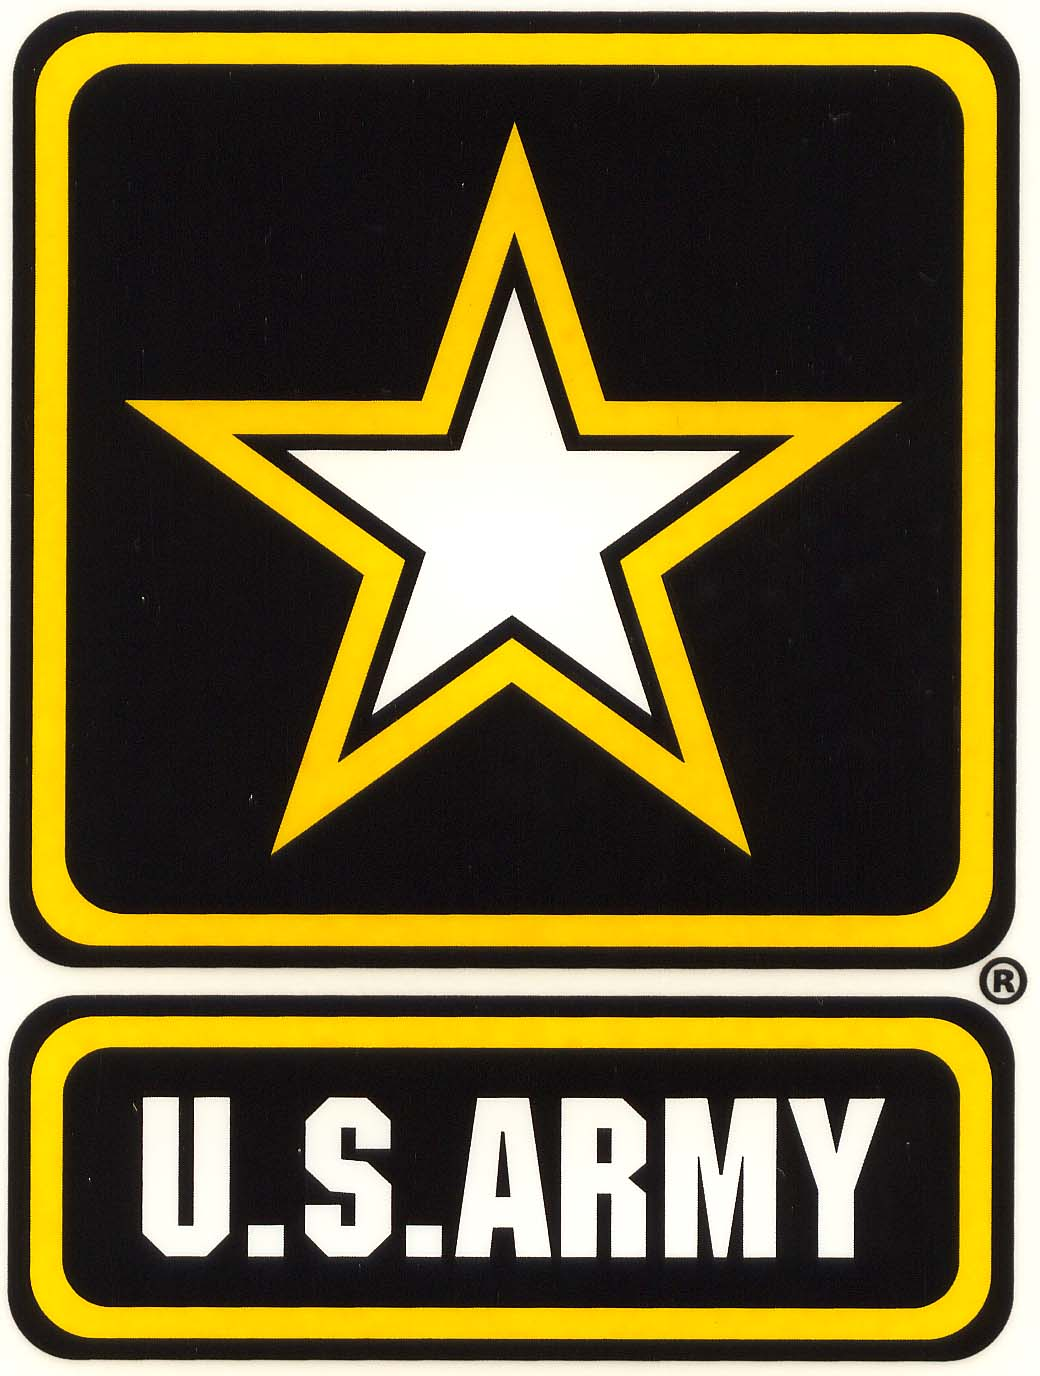 United states army clipart picture library stock Army Logo Clipart - Clipart Kid picture library stock